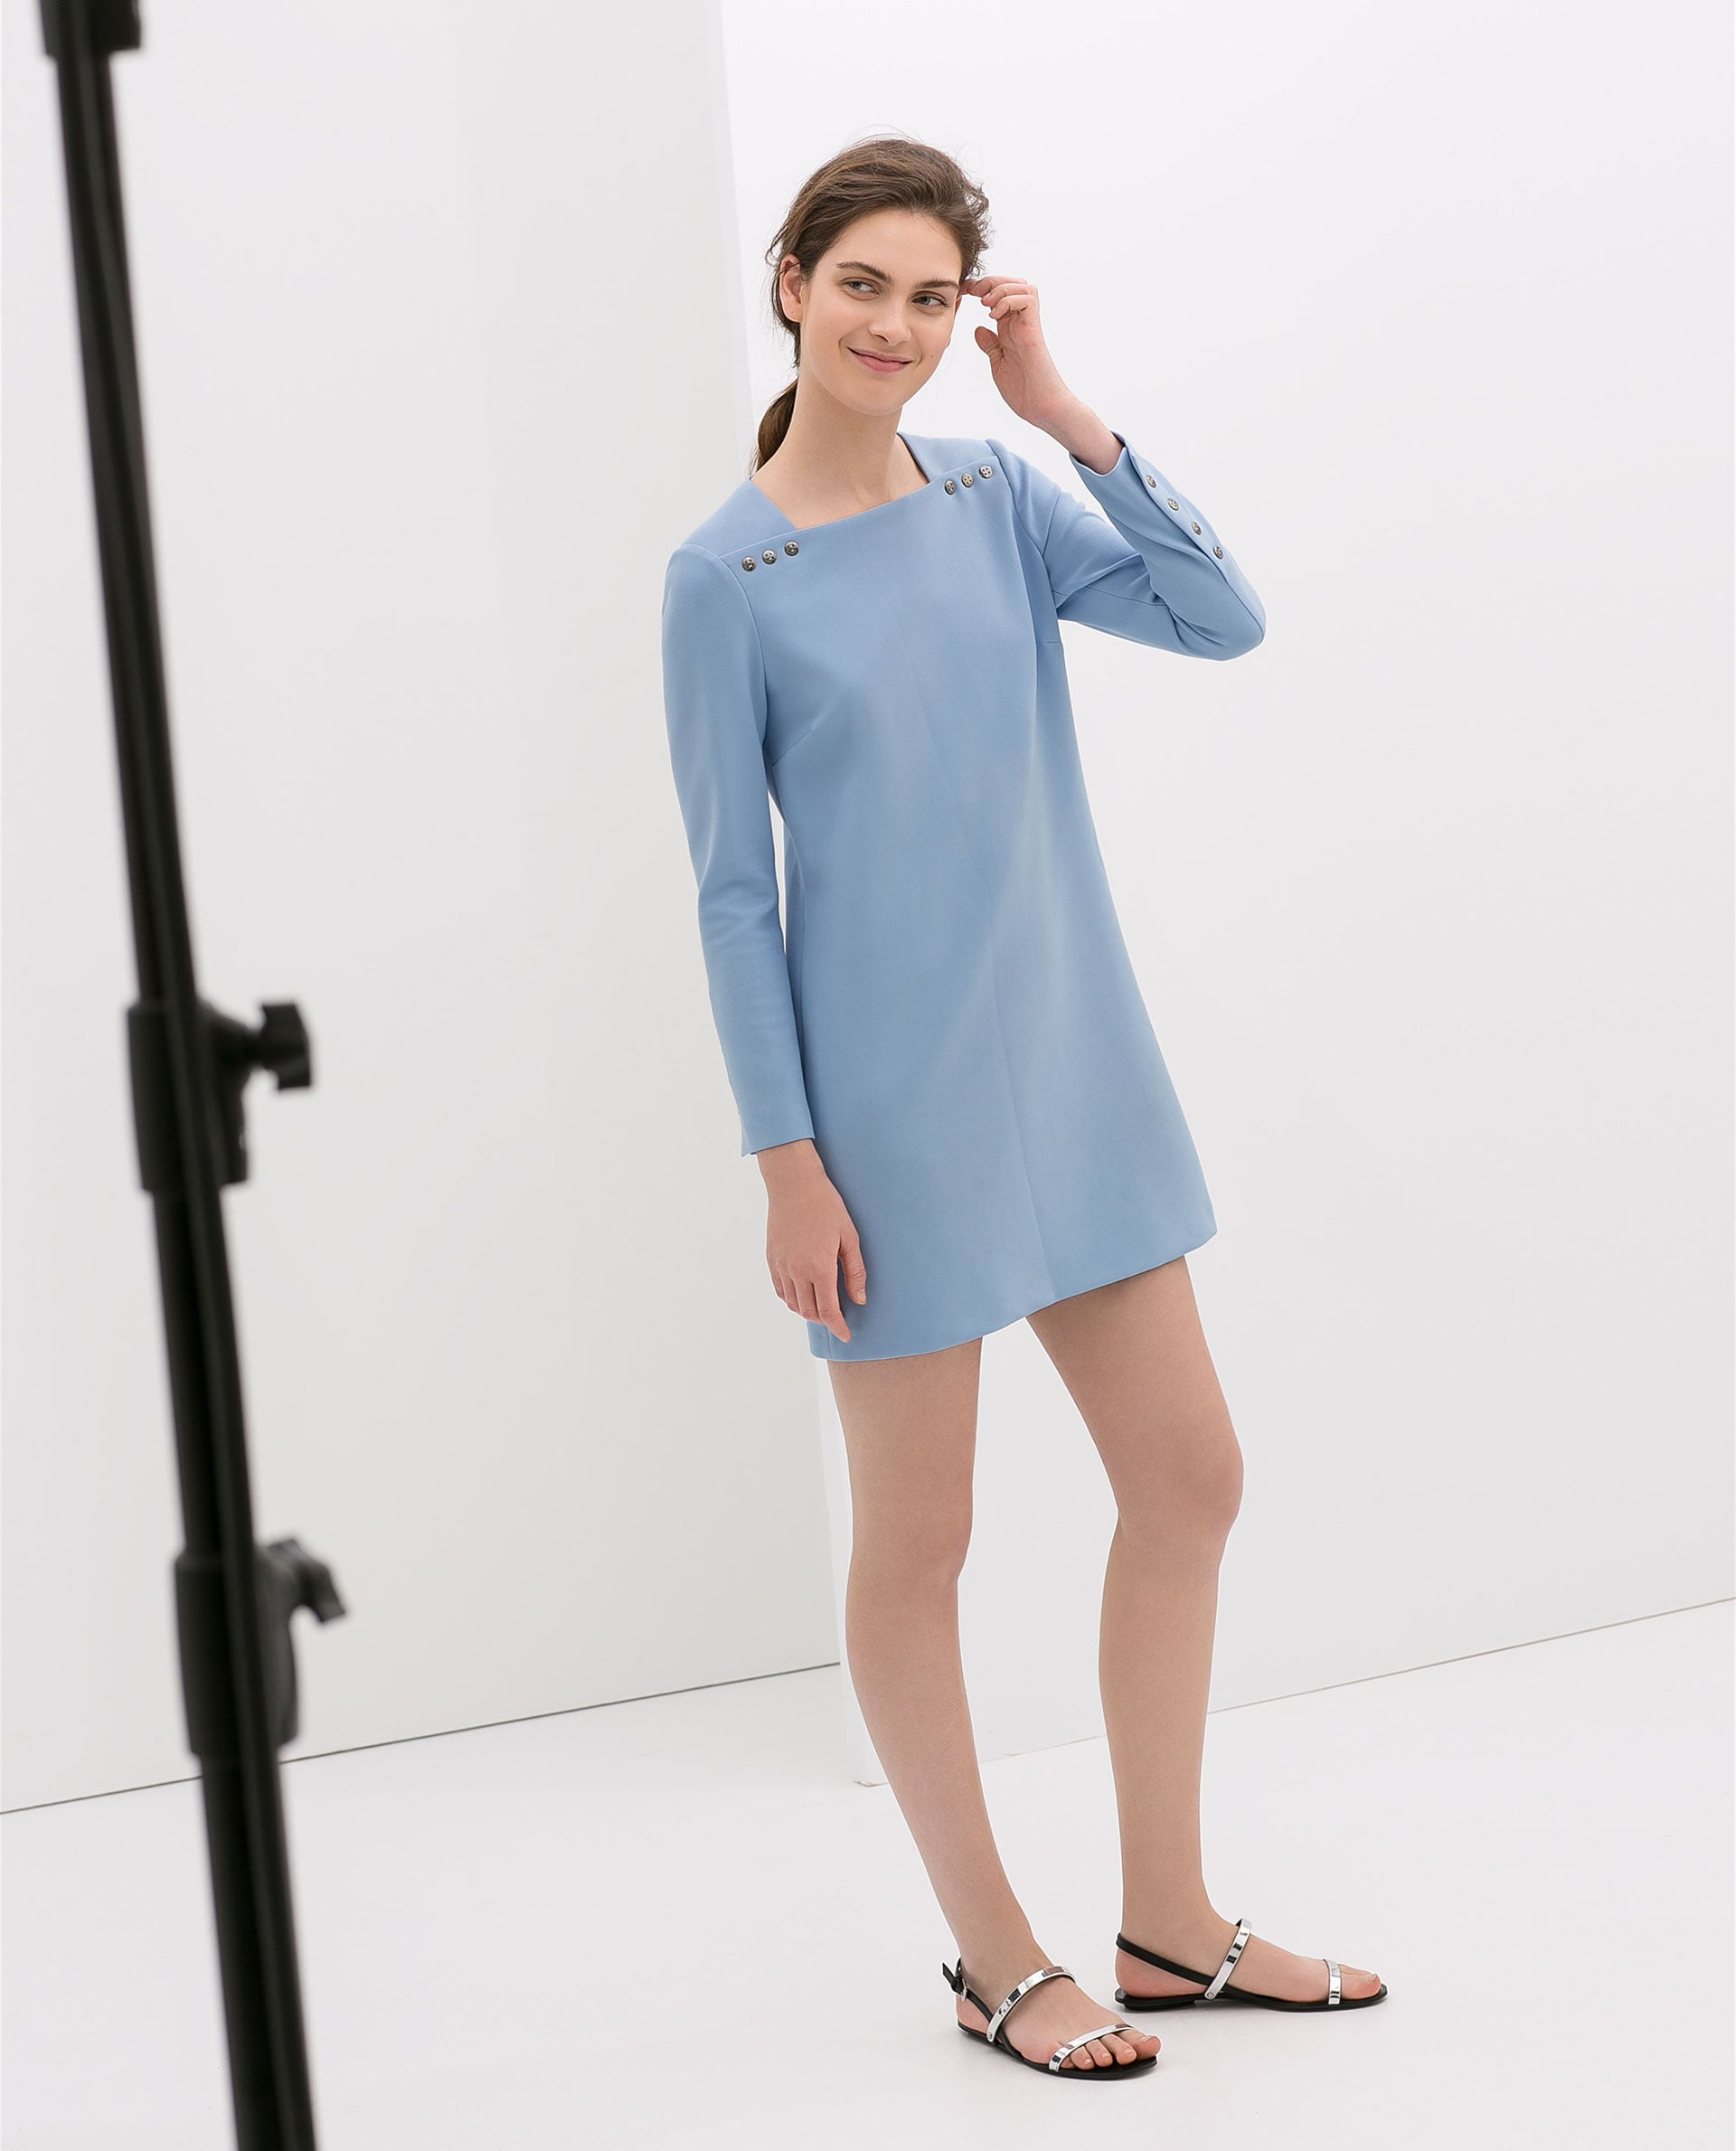 Zara Long-Sleeve Blue Dress With Buttons ($100)